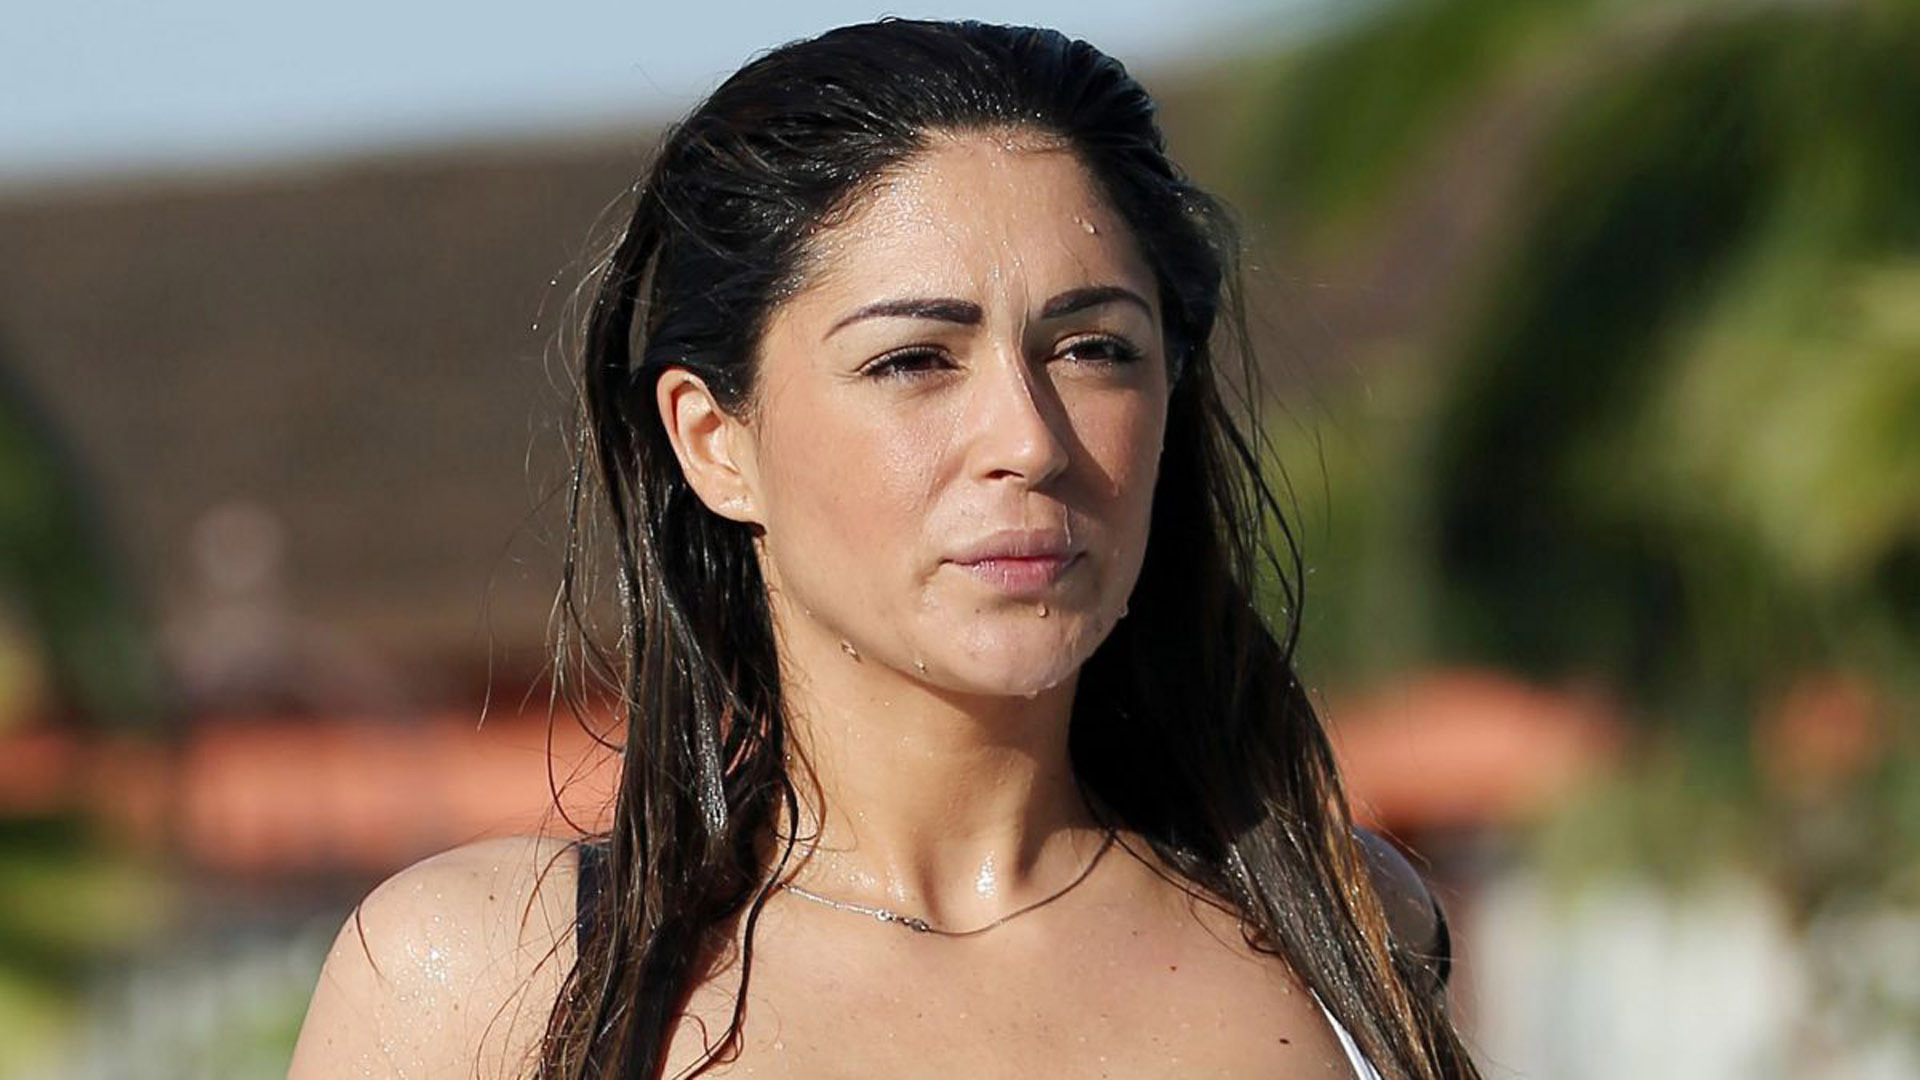 Casey Batchelor High Definition Wallpapers